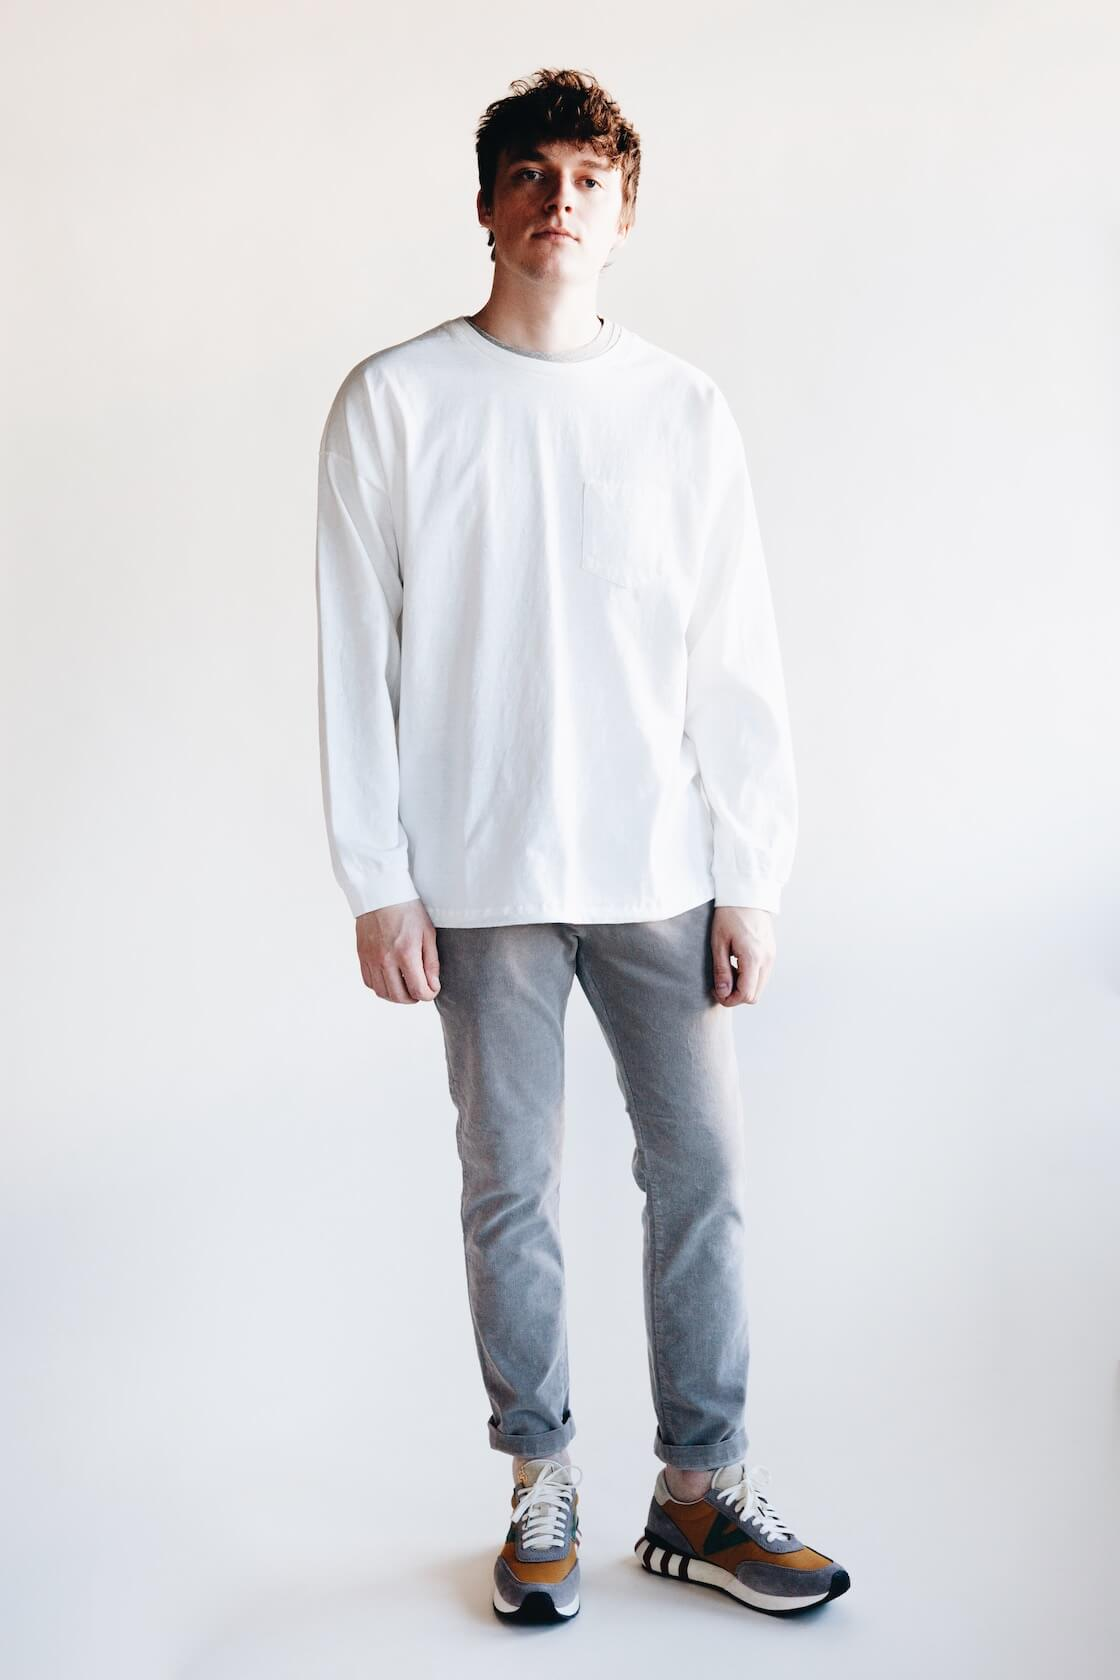 remi relief jersey double neck grunge tee, stretched corduroy slacks and visvim attica trainers on body